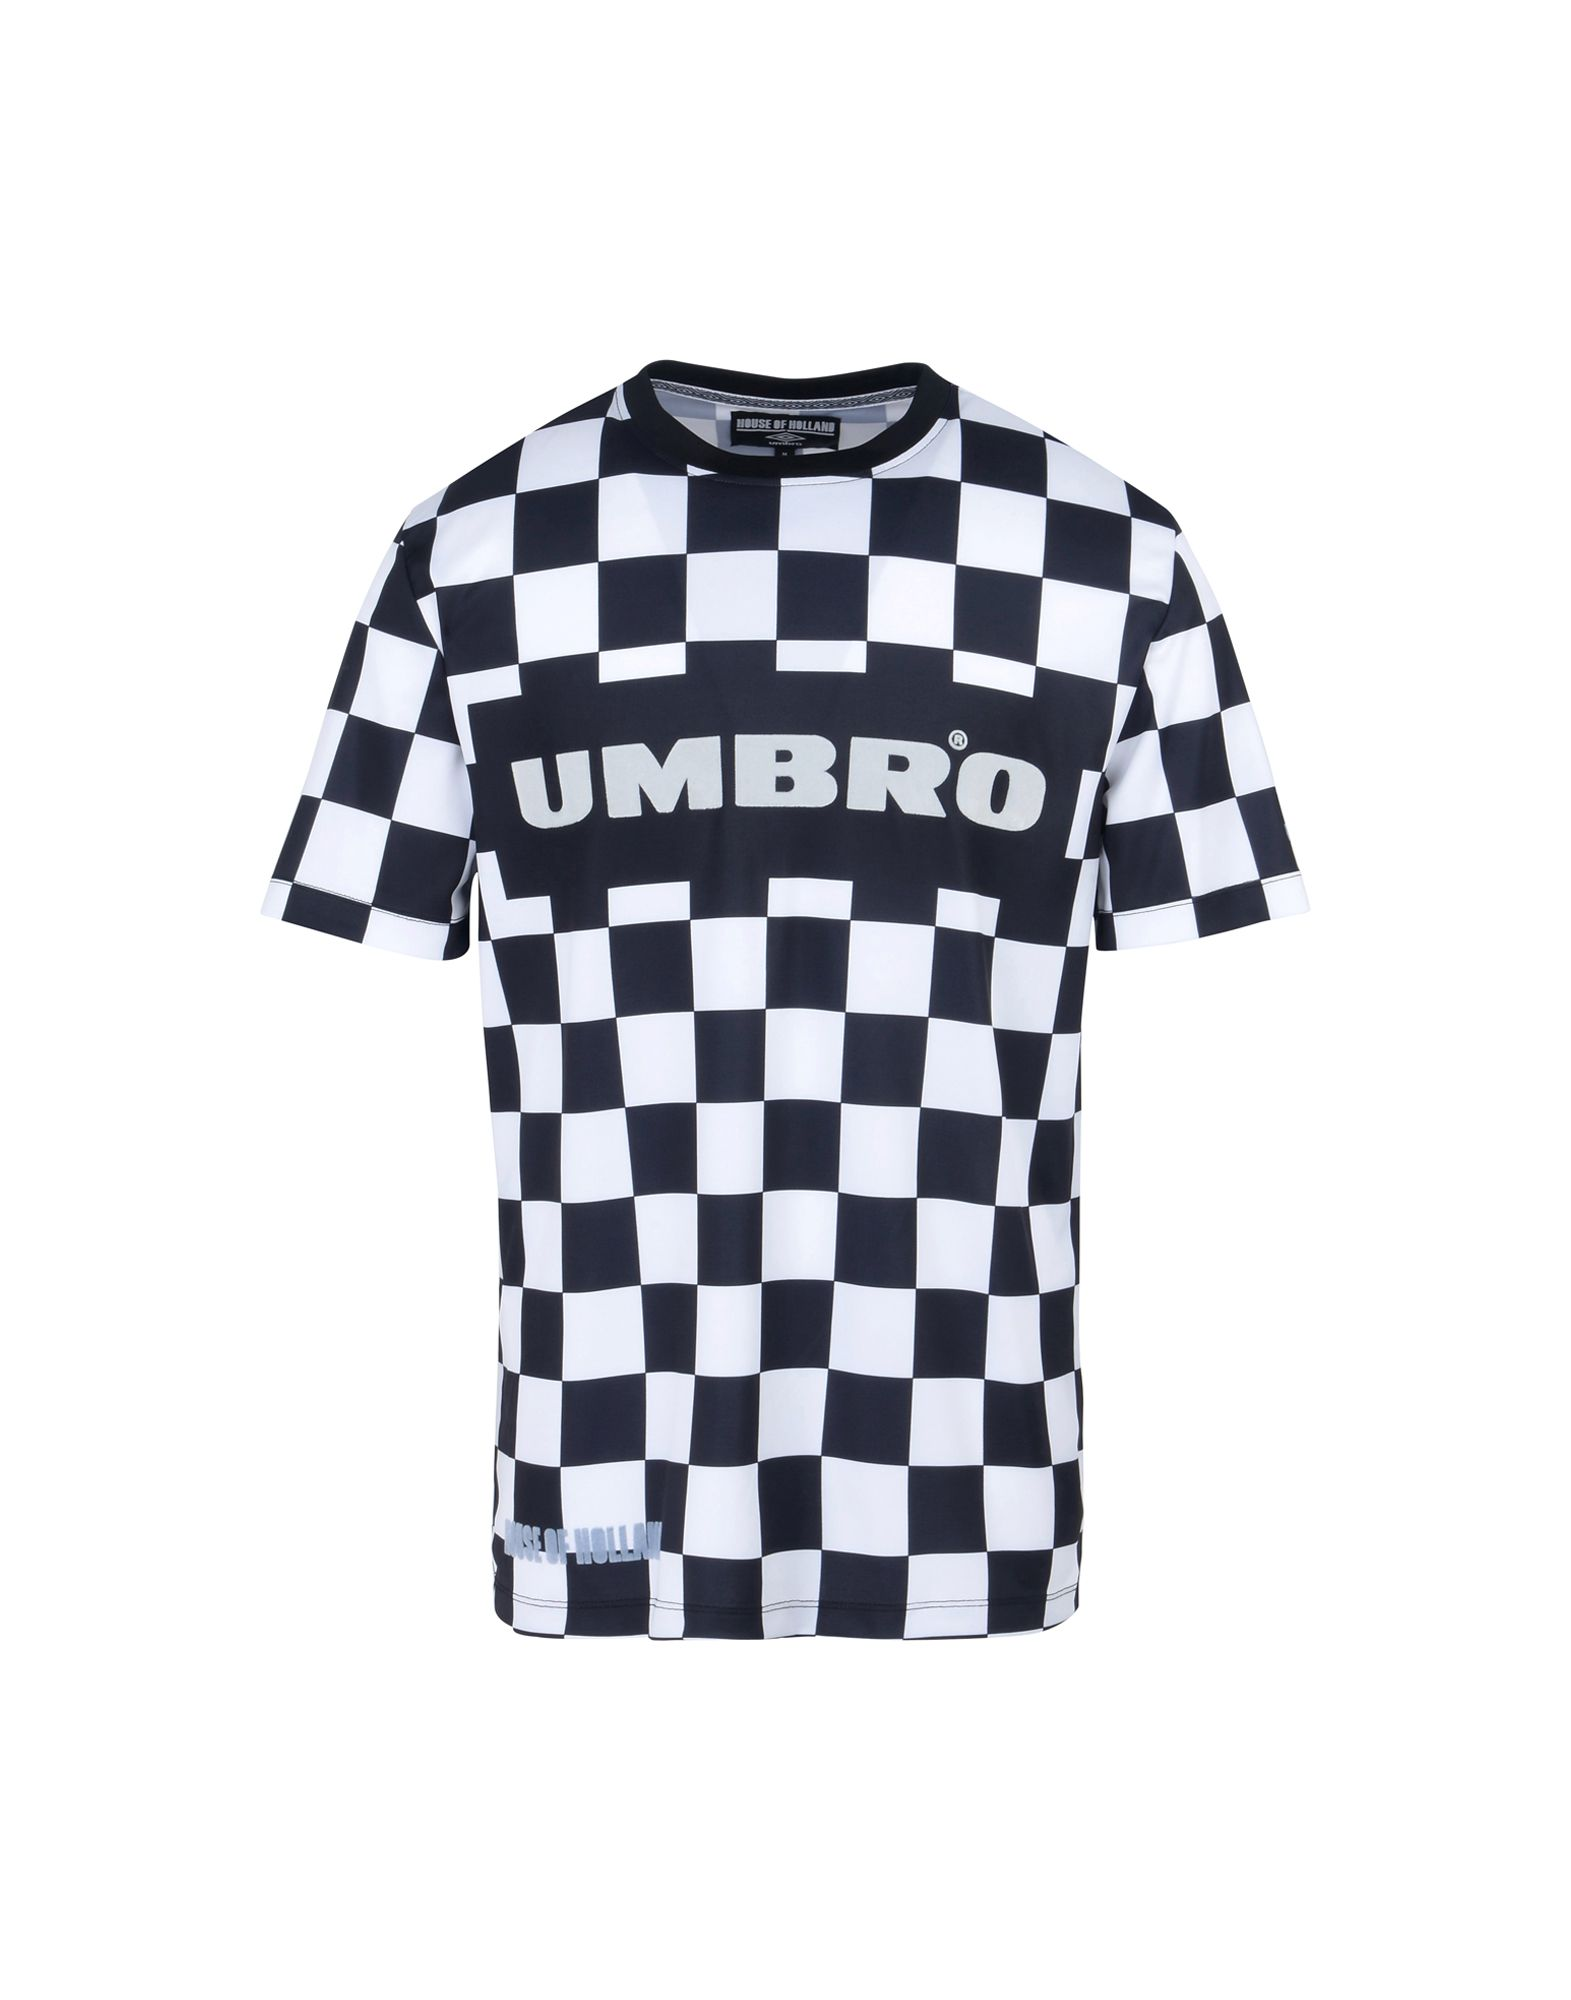 UMBRO x HOUSE OF HOLLAND Футболка футболка wearcraft premium printio keep calm i am 1 1